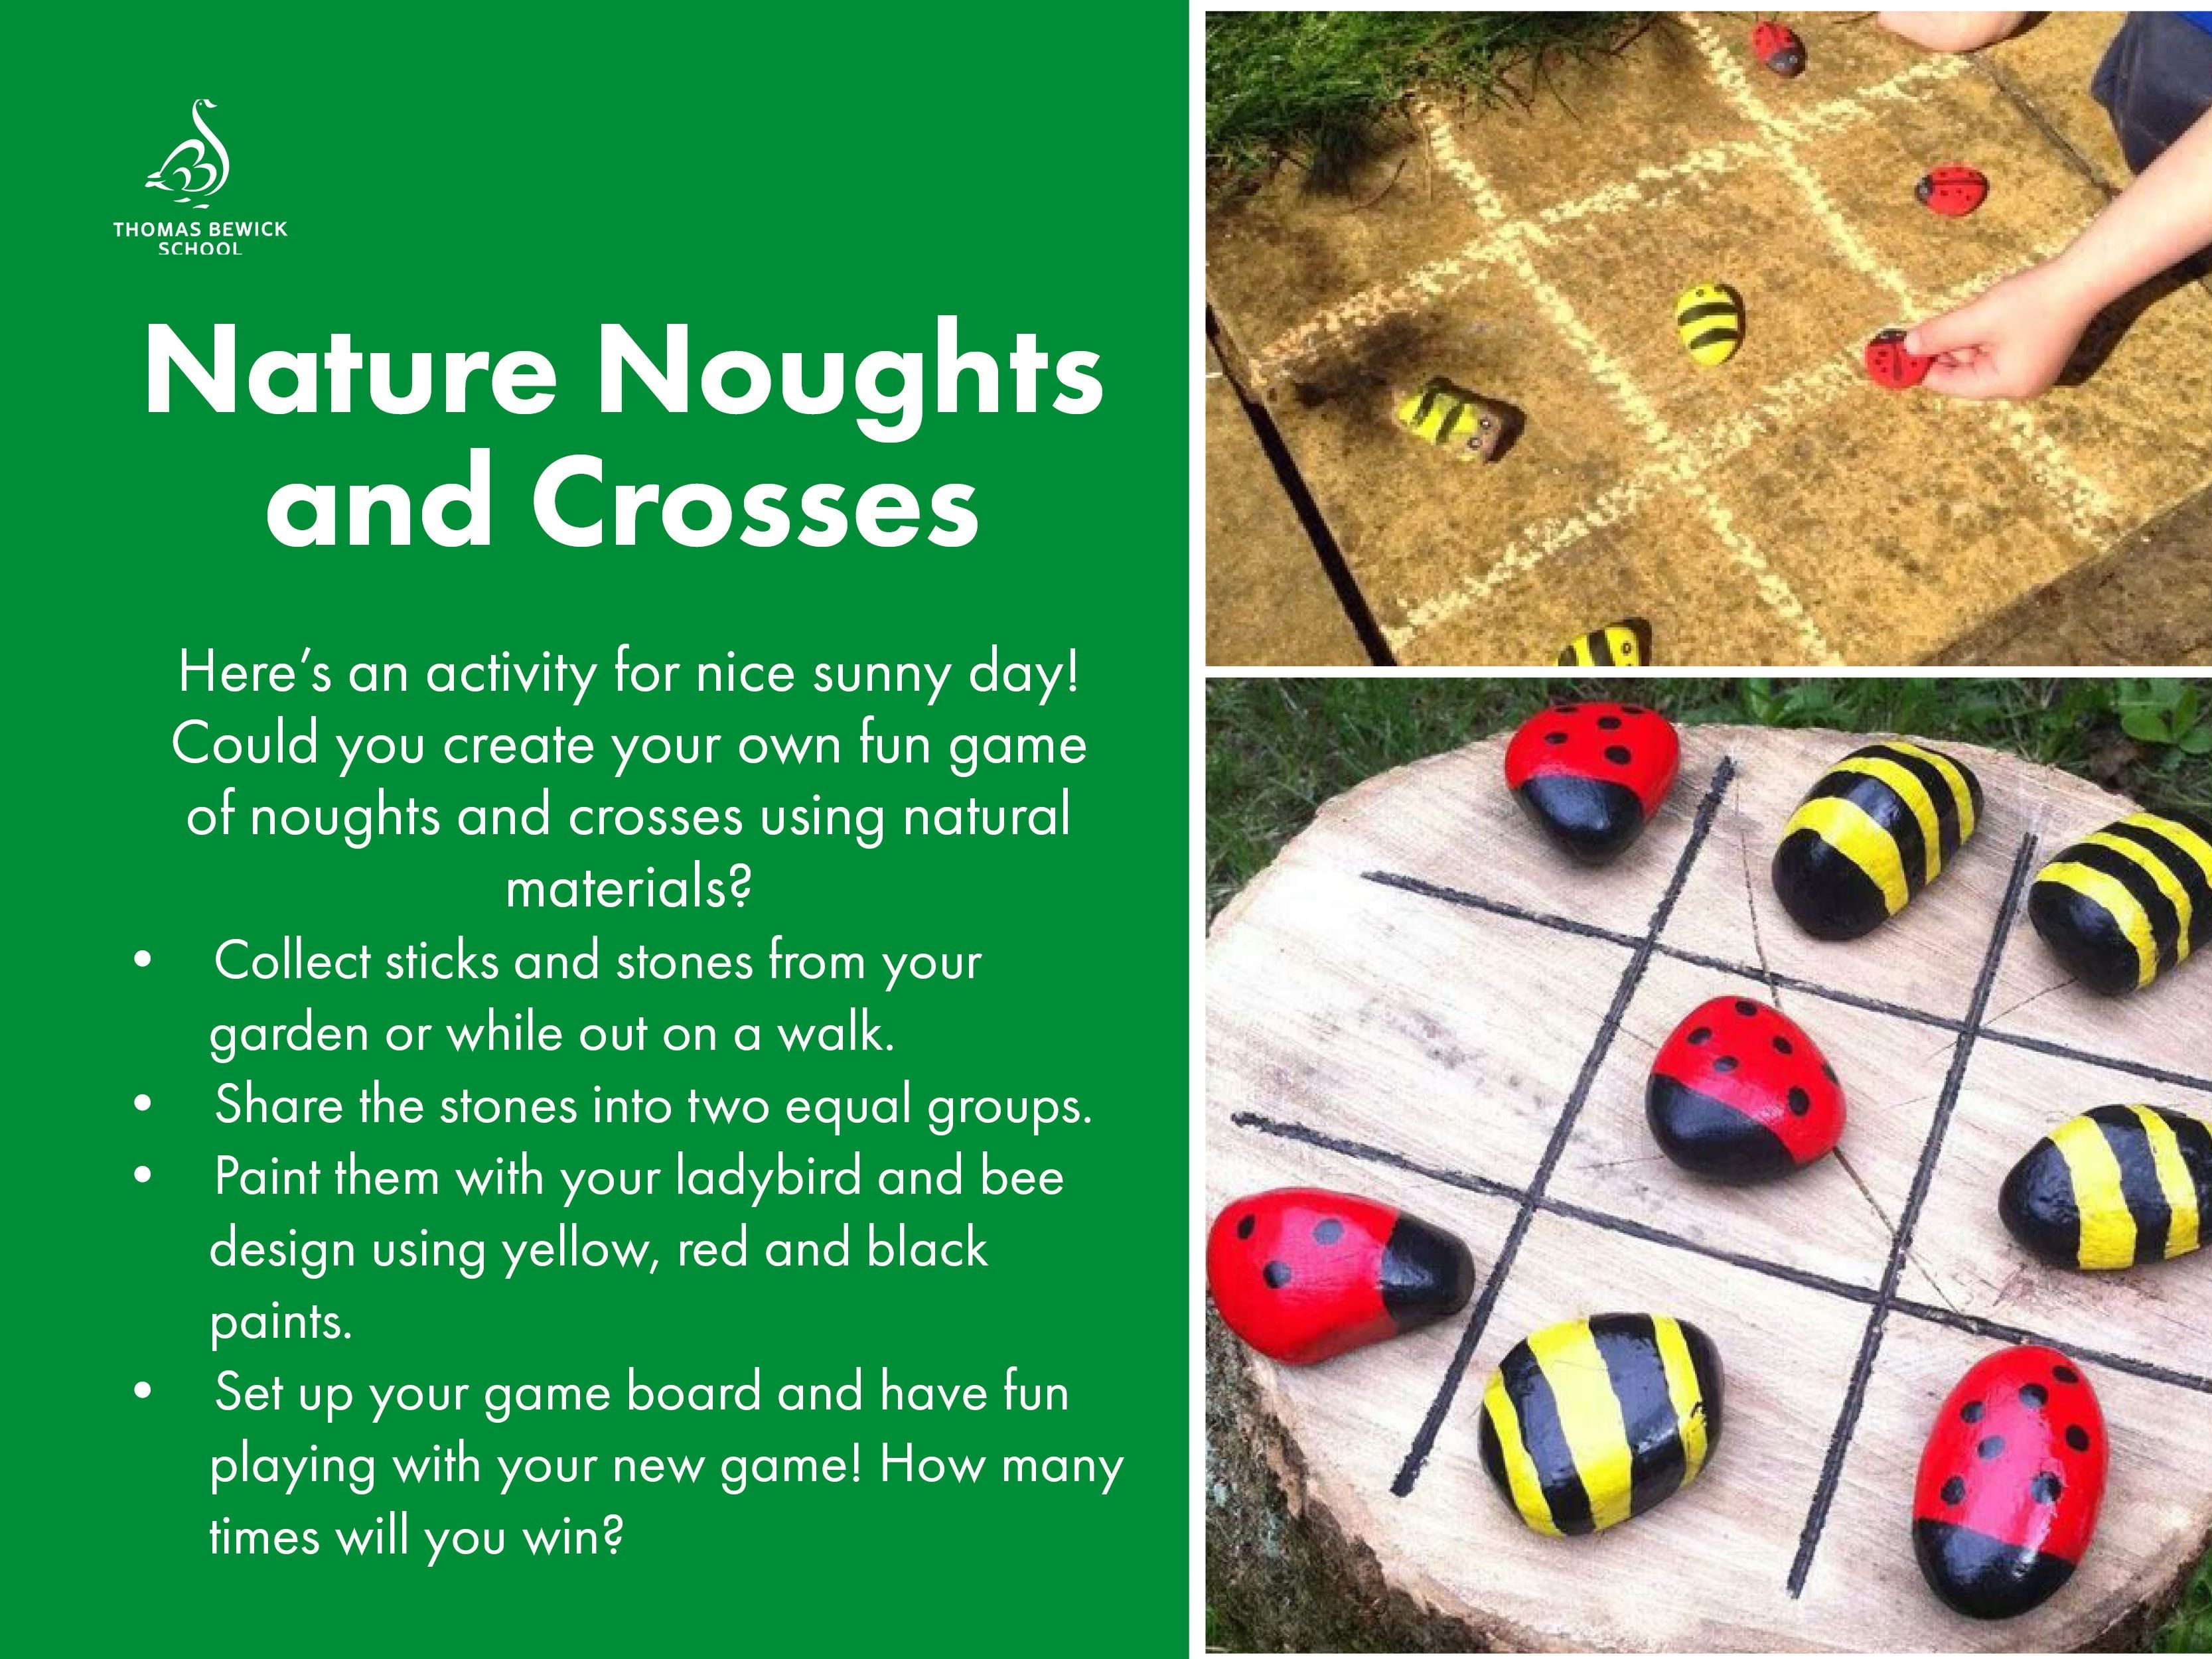 Nature Noughts and Crosses